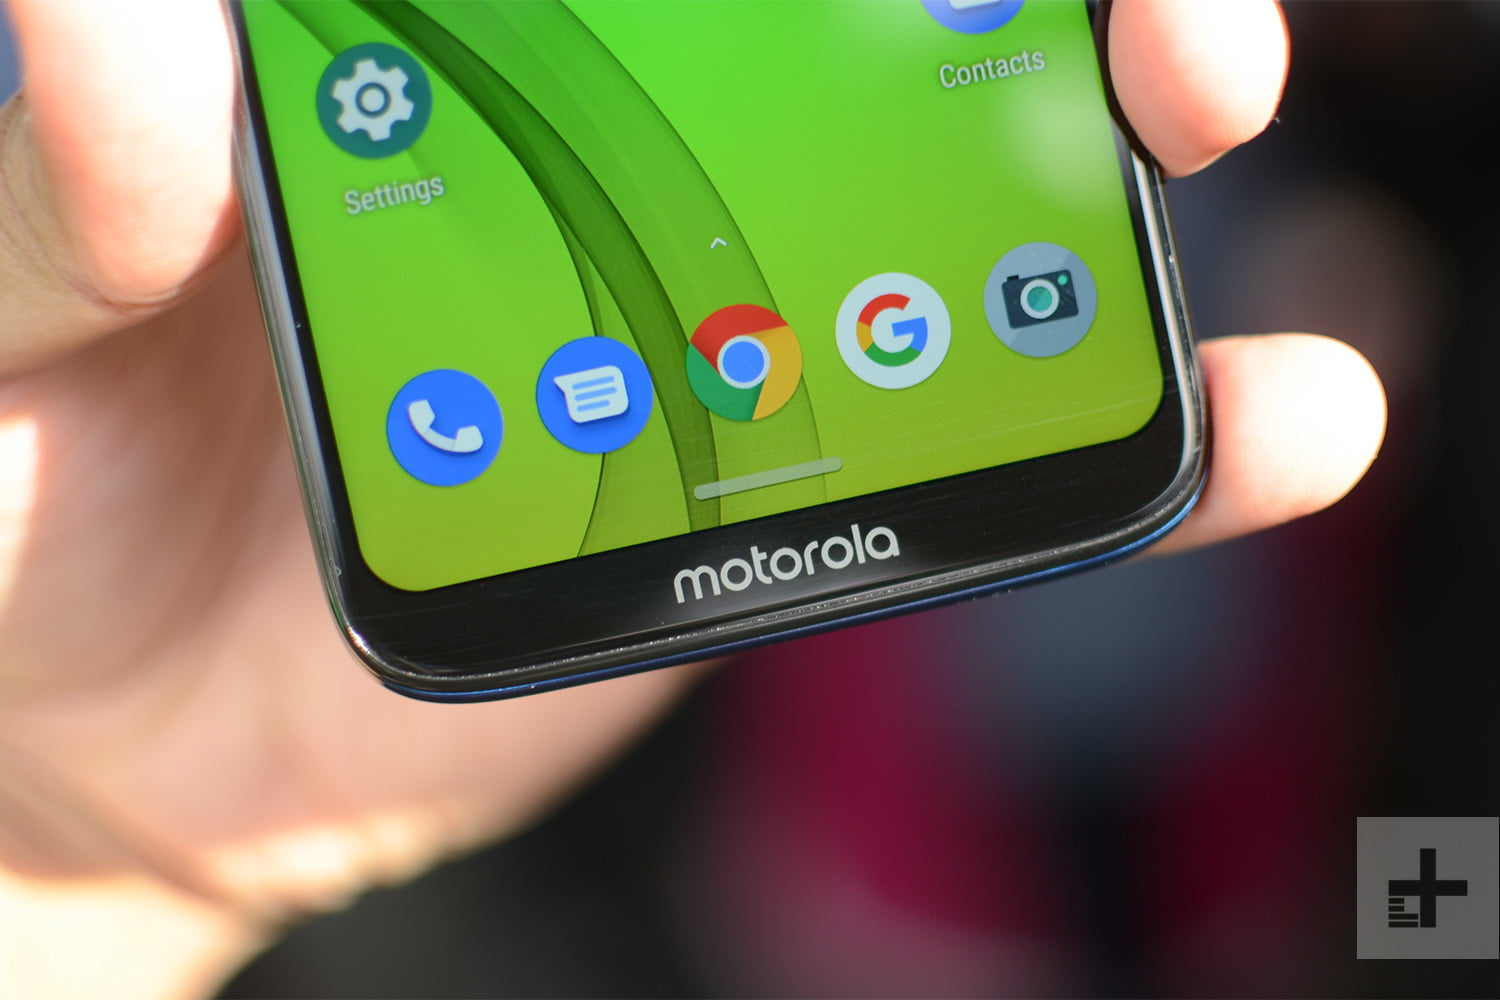 Moto G7, G7 Power, G7 Play: News, Specs, Pricing, and More   Digital